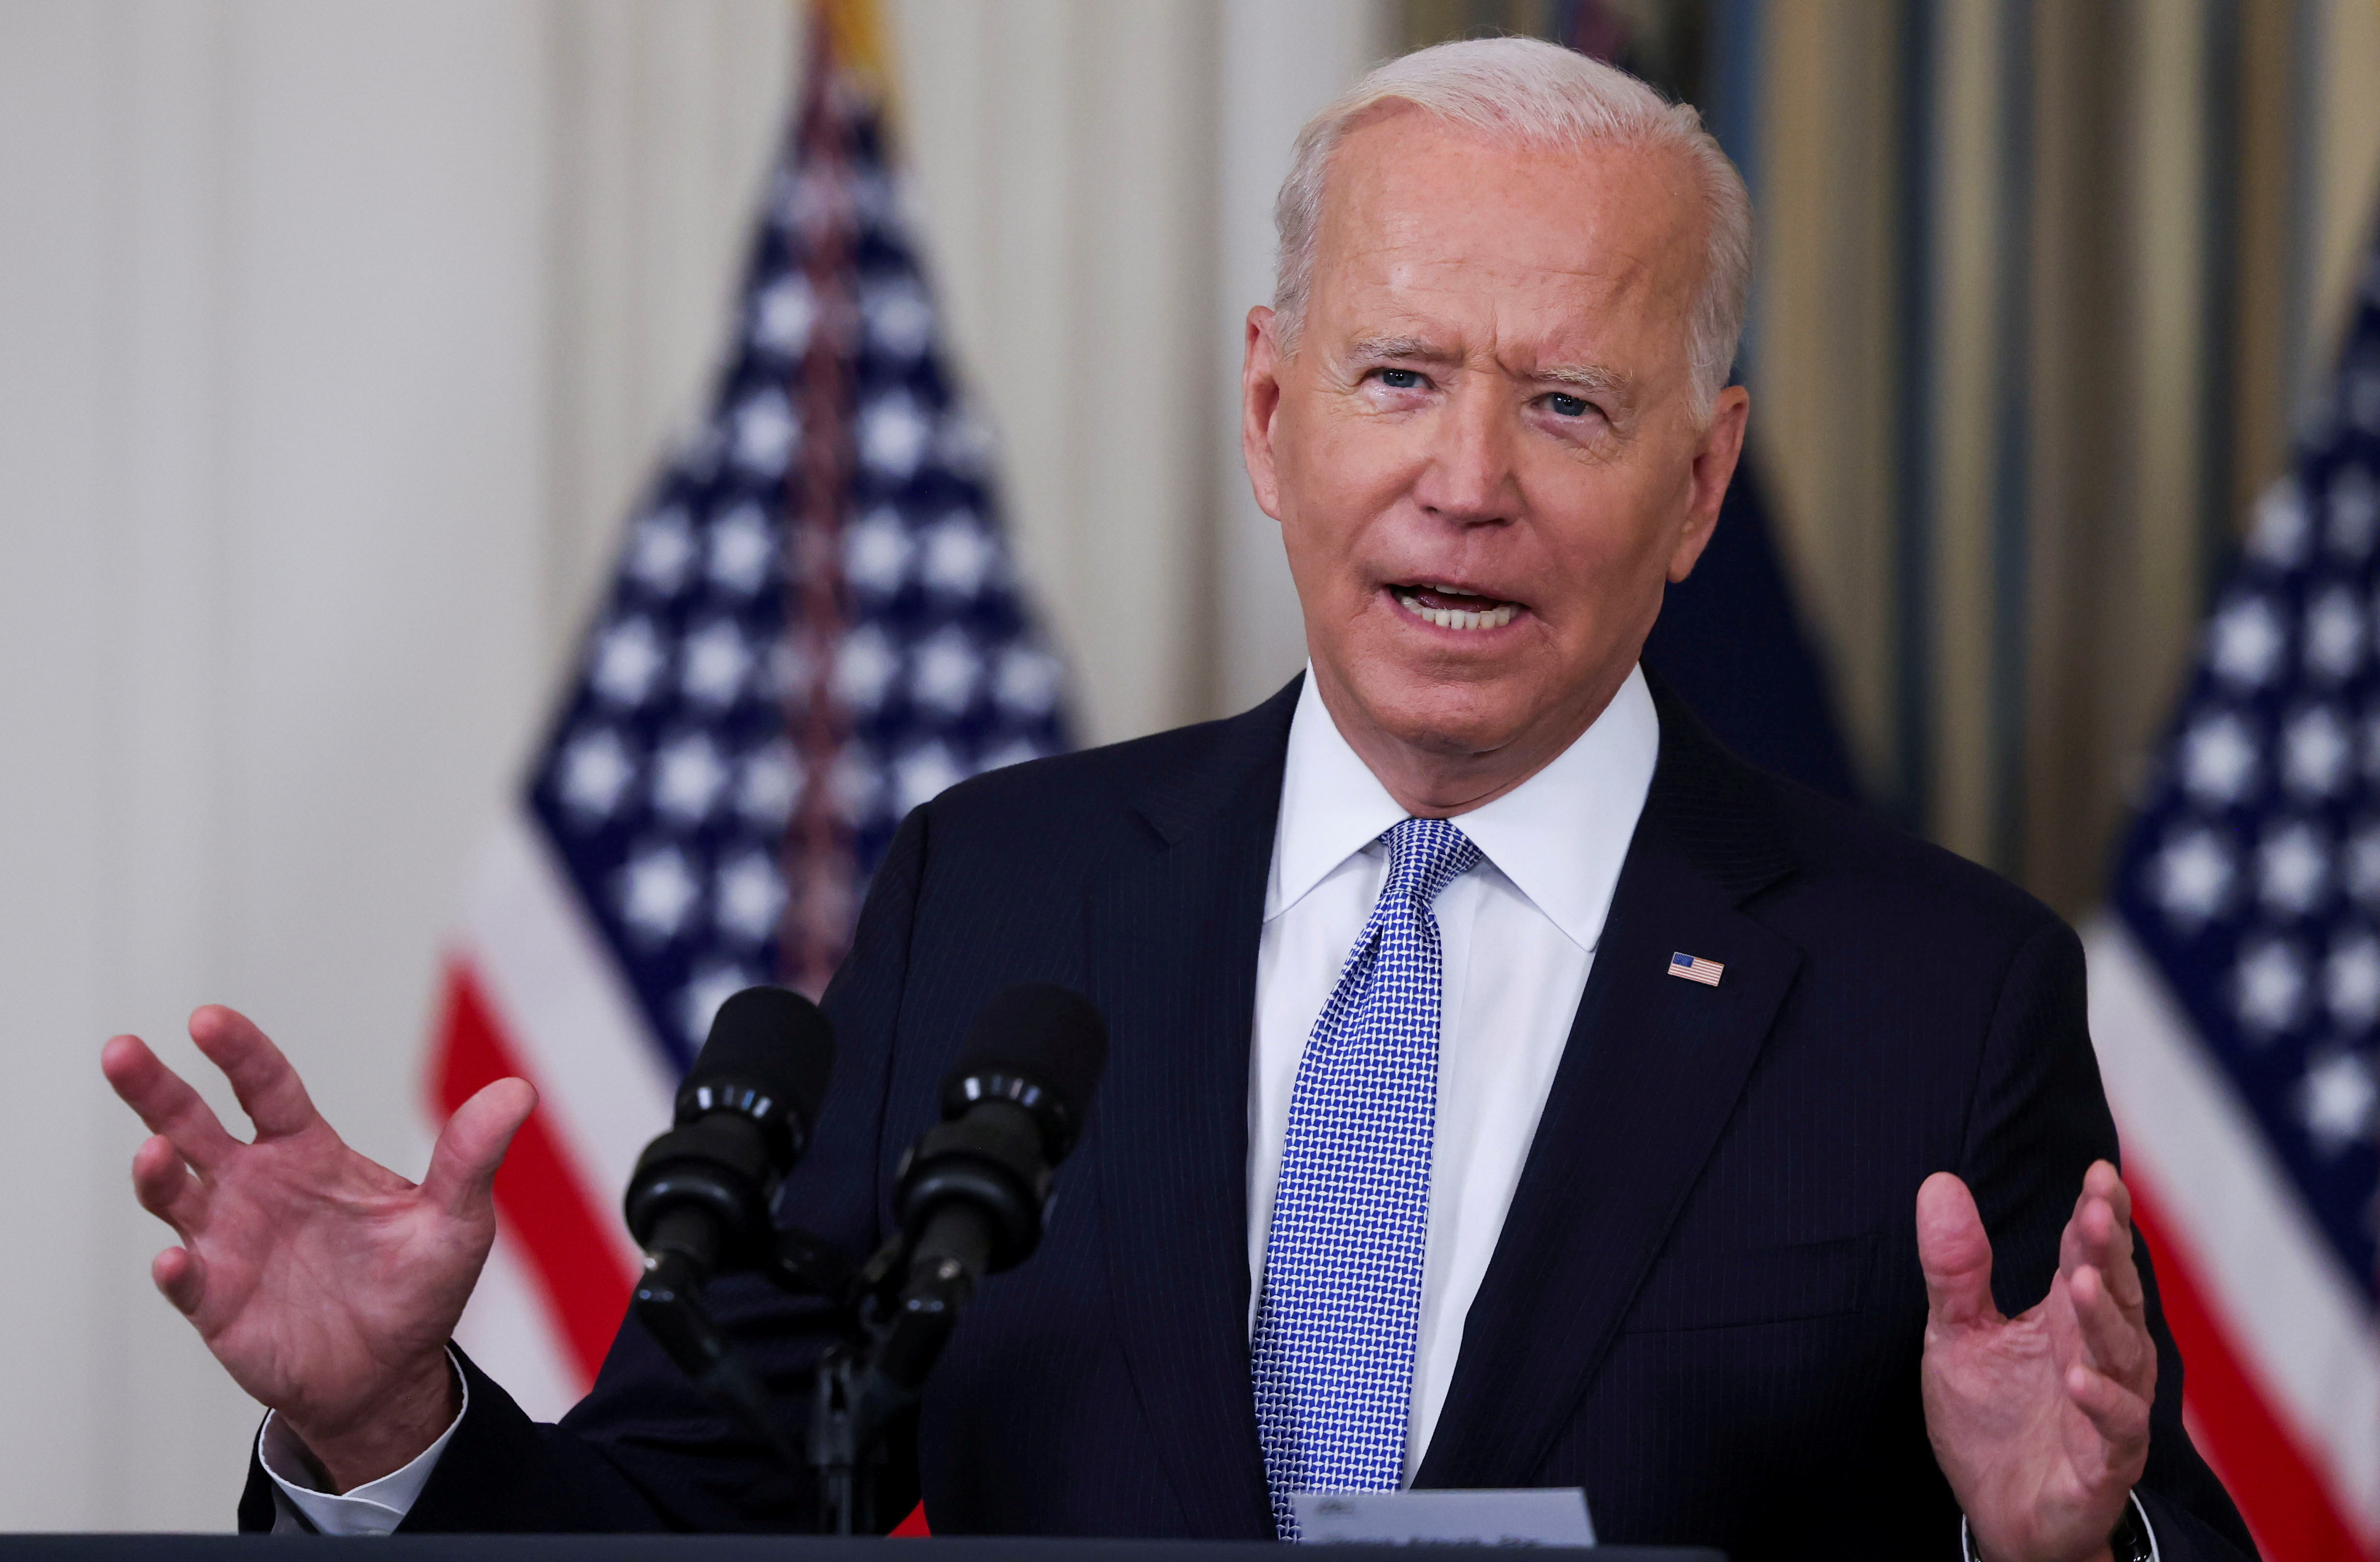 U.S. President Joe Biden responds to a question from a reporter after speaking about coronavirus disease (COVID-19) vaccines and booster shots in the State Dining Room at the White House in Washington, U.S., September 24, 2021. REUTERS/Evelyn Hockstein